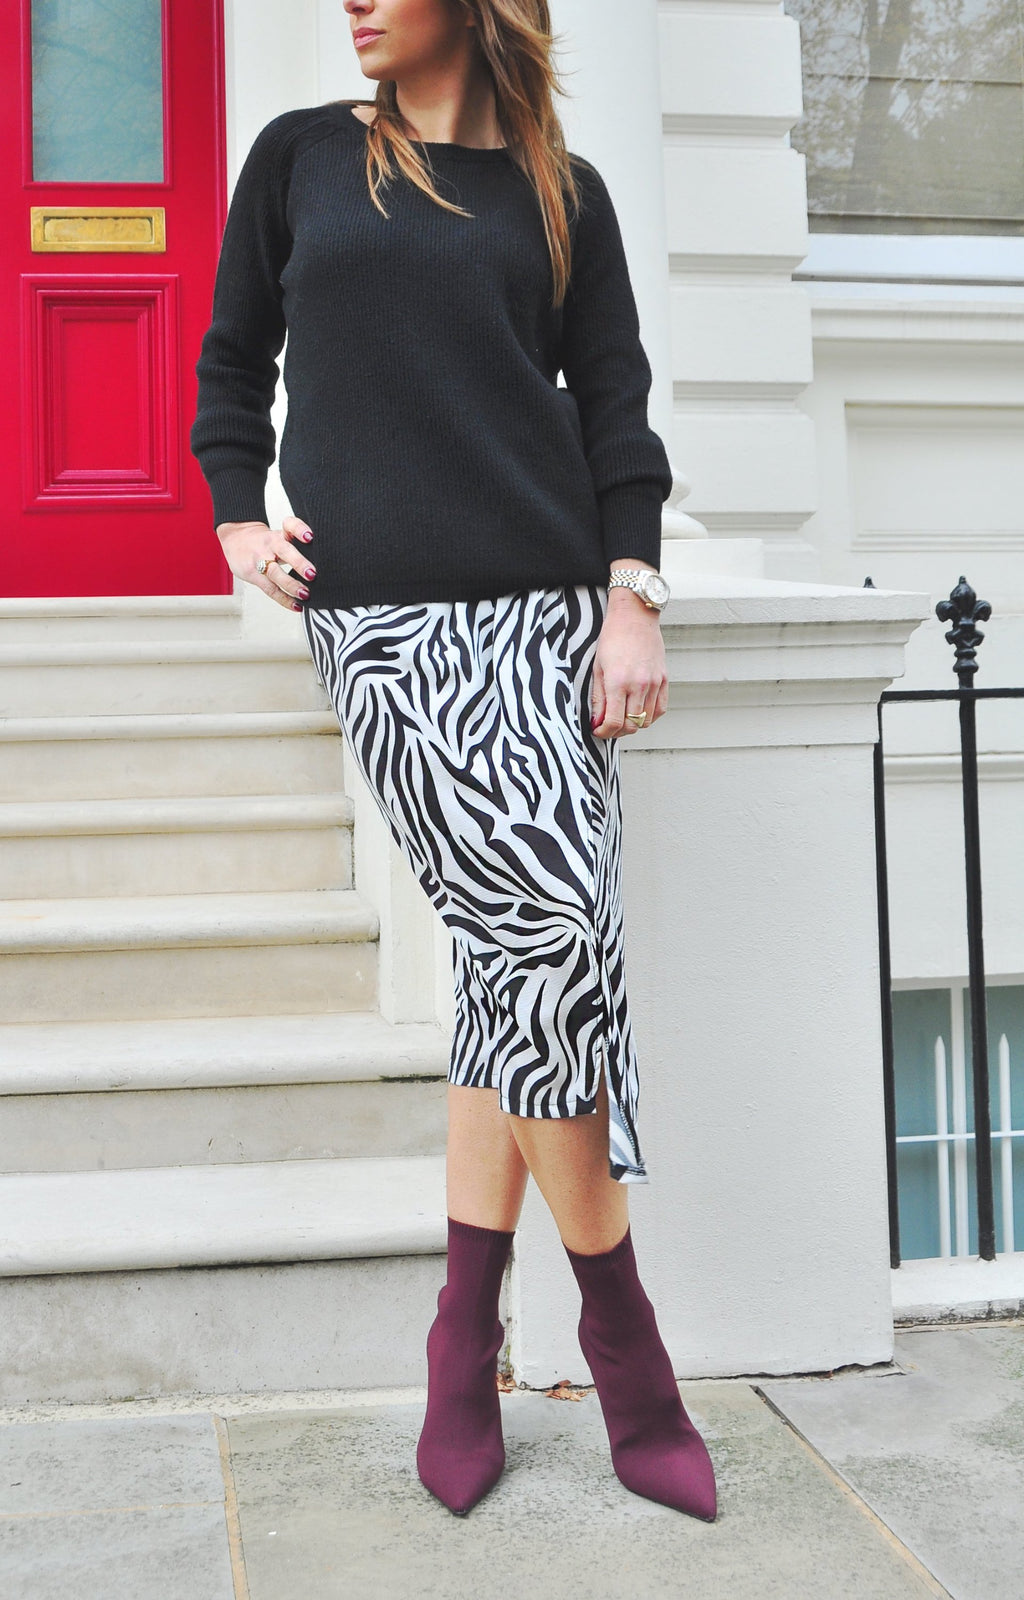 ZAZA SKIRT in Zebra